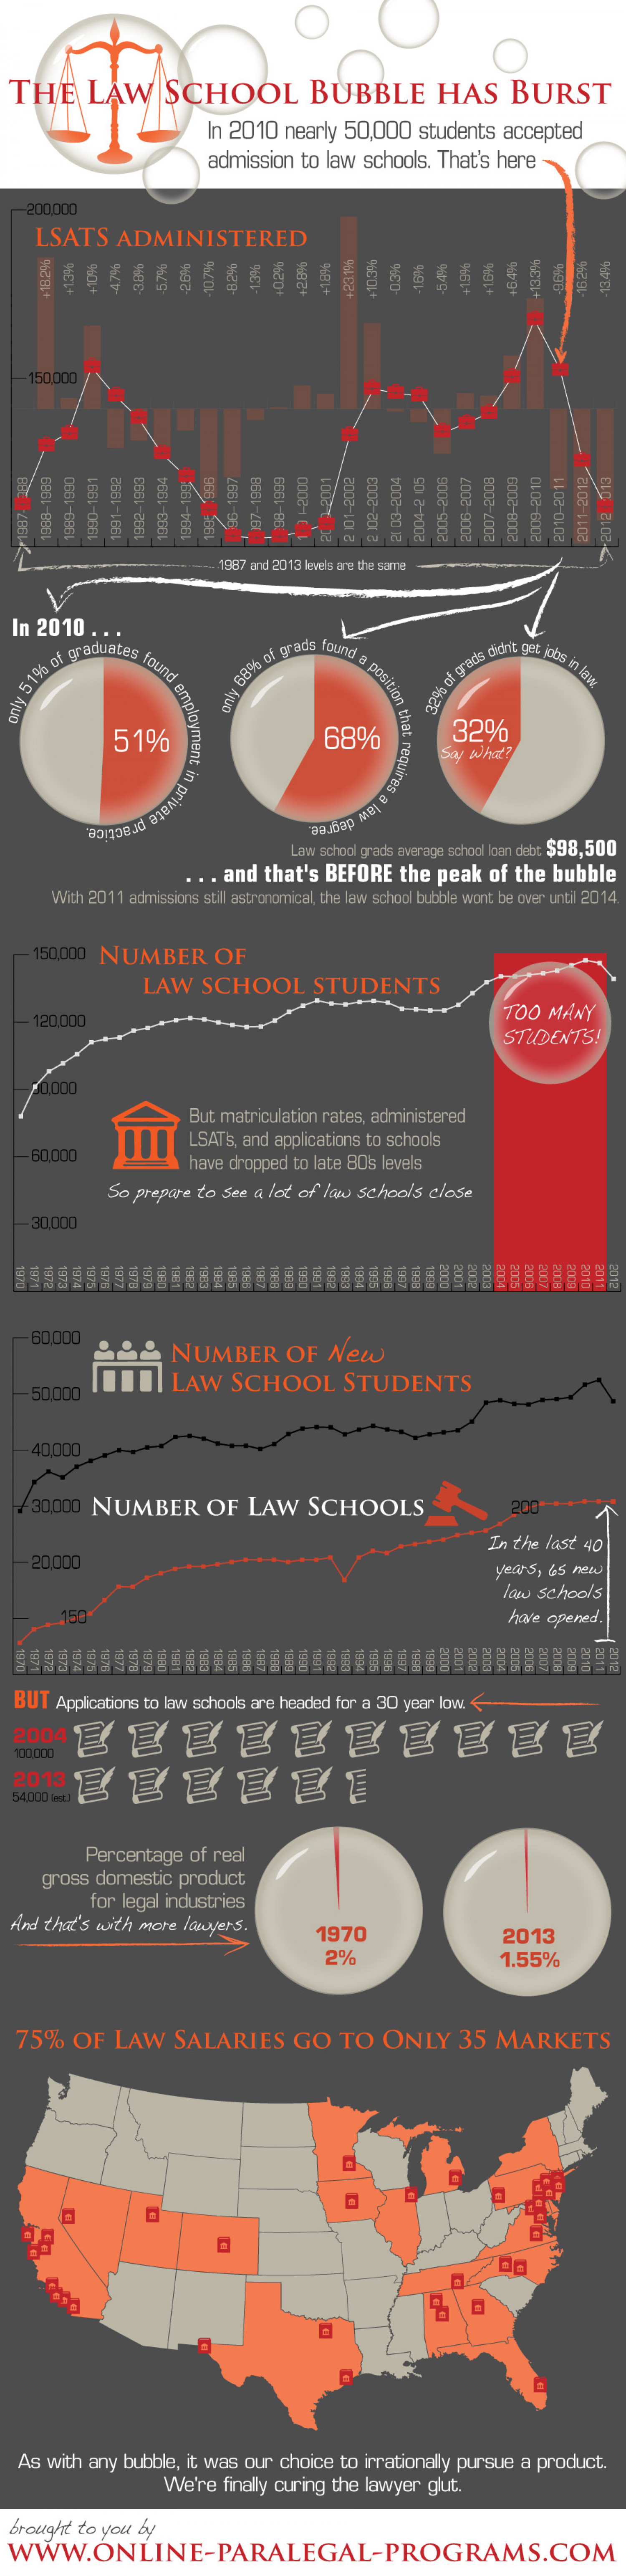 The Law School Bubble Has Burst Infographic